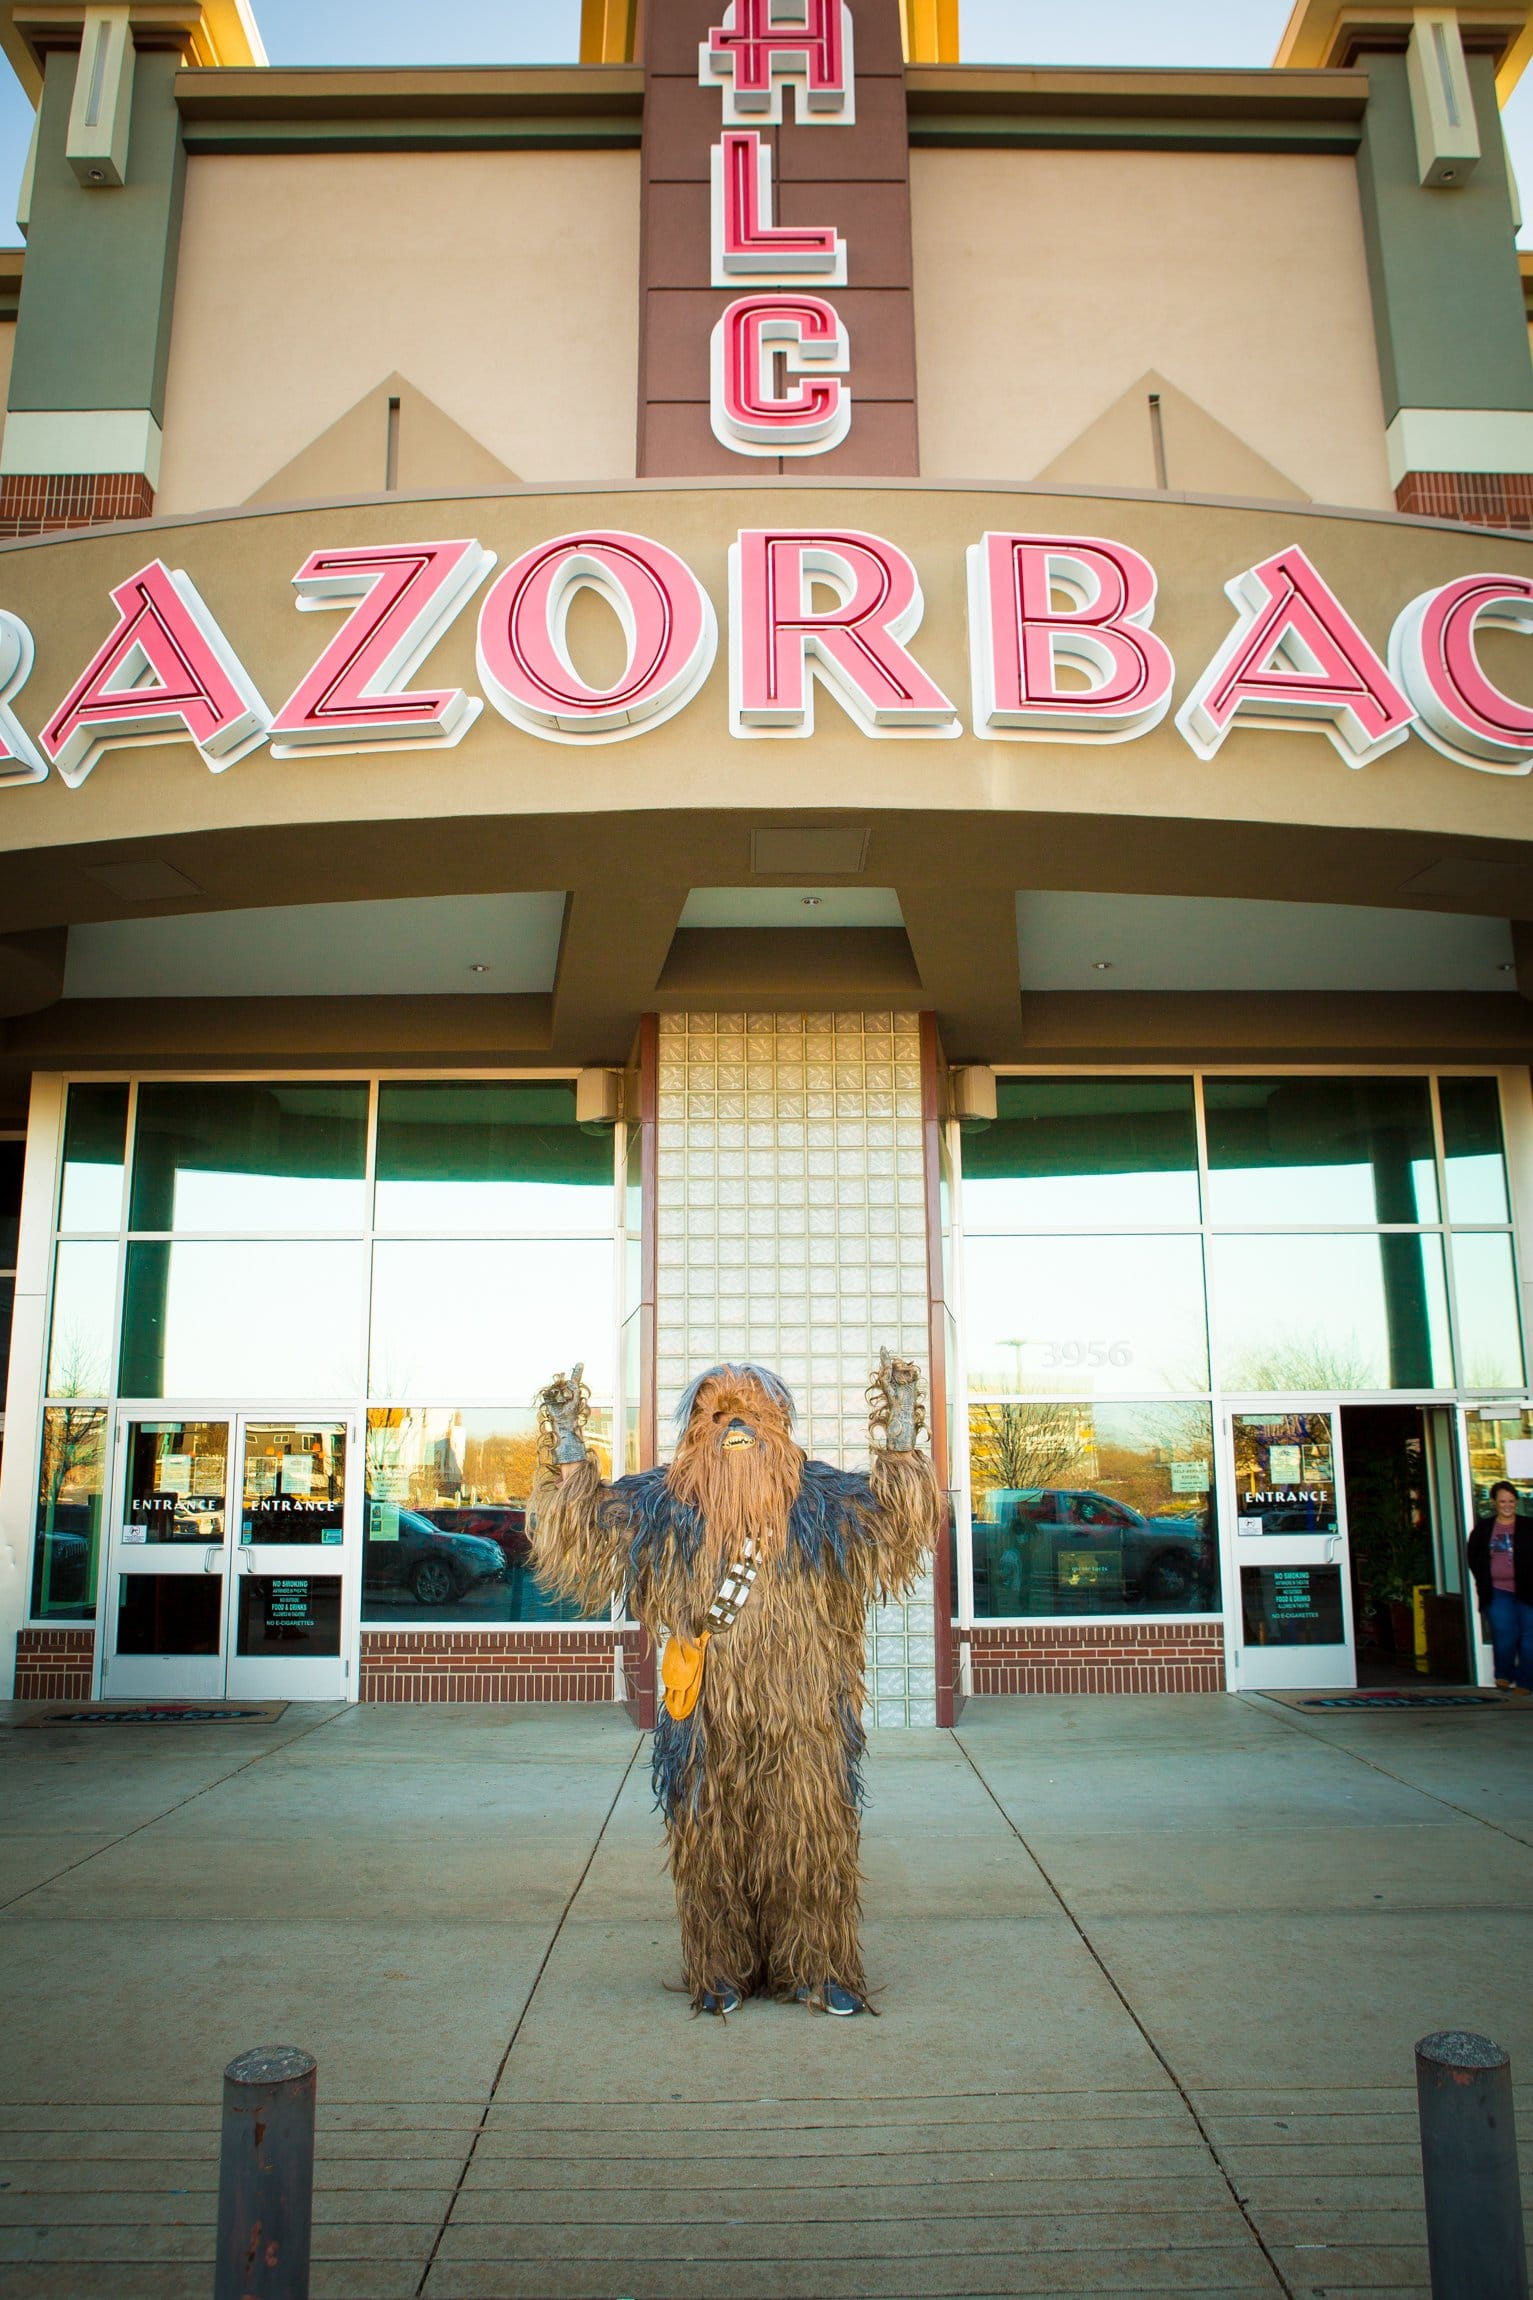 Northwest-Orthodontics-Star-Wars-2018-Star-Wars-Movie-Day-Fayetteville-Arkansas-36-of-38